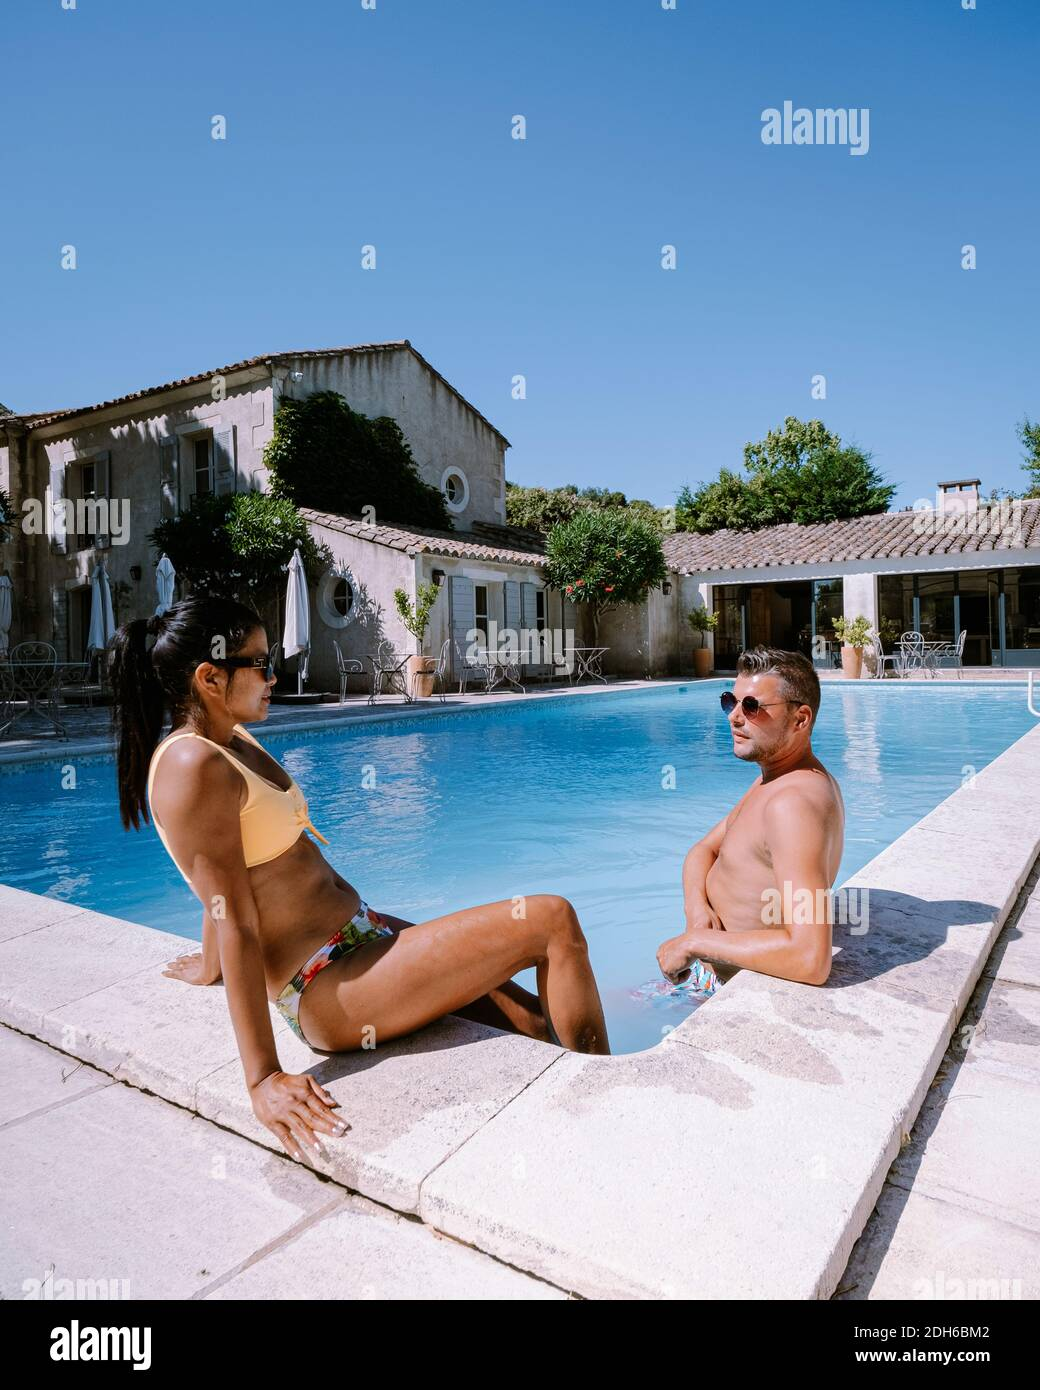 Couple relaxing by the pool in the Provence France, men and woman relaxing by pool at luxury resort Stock Photo